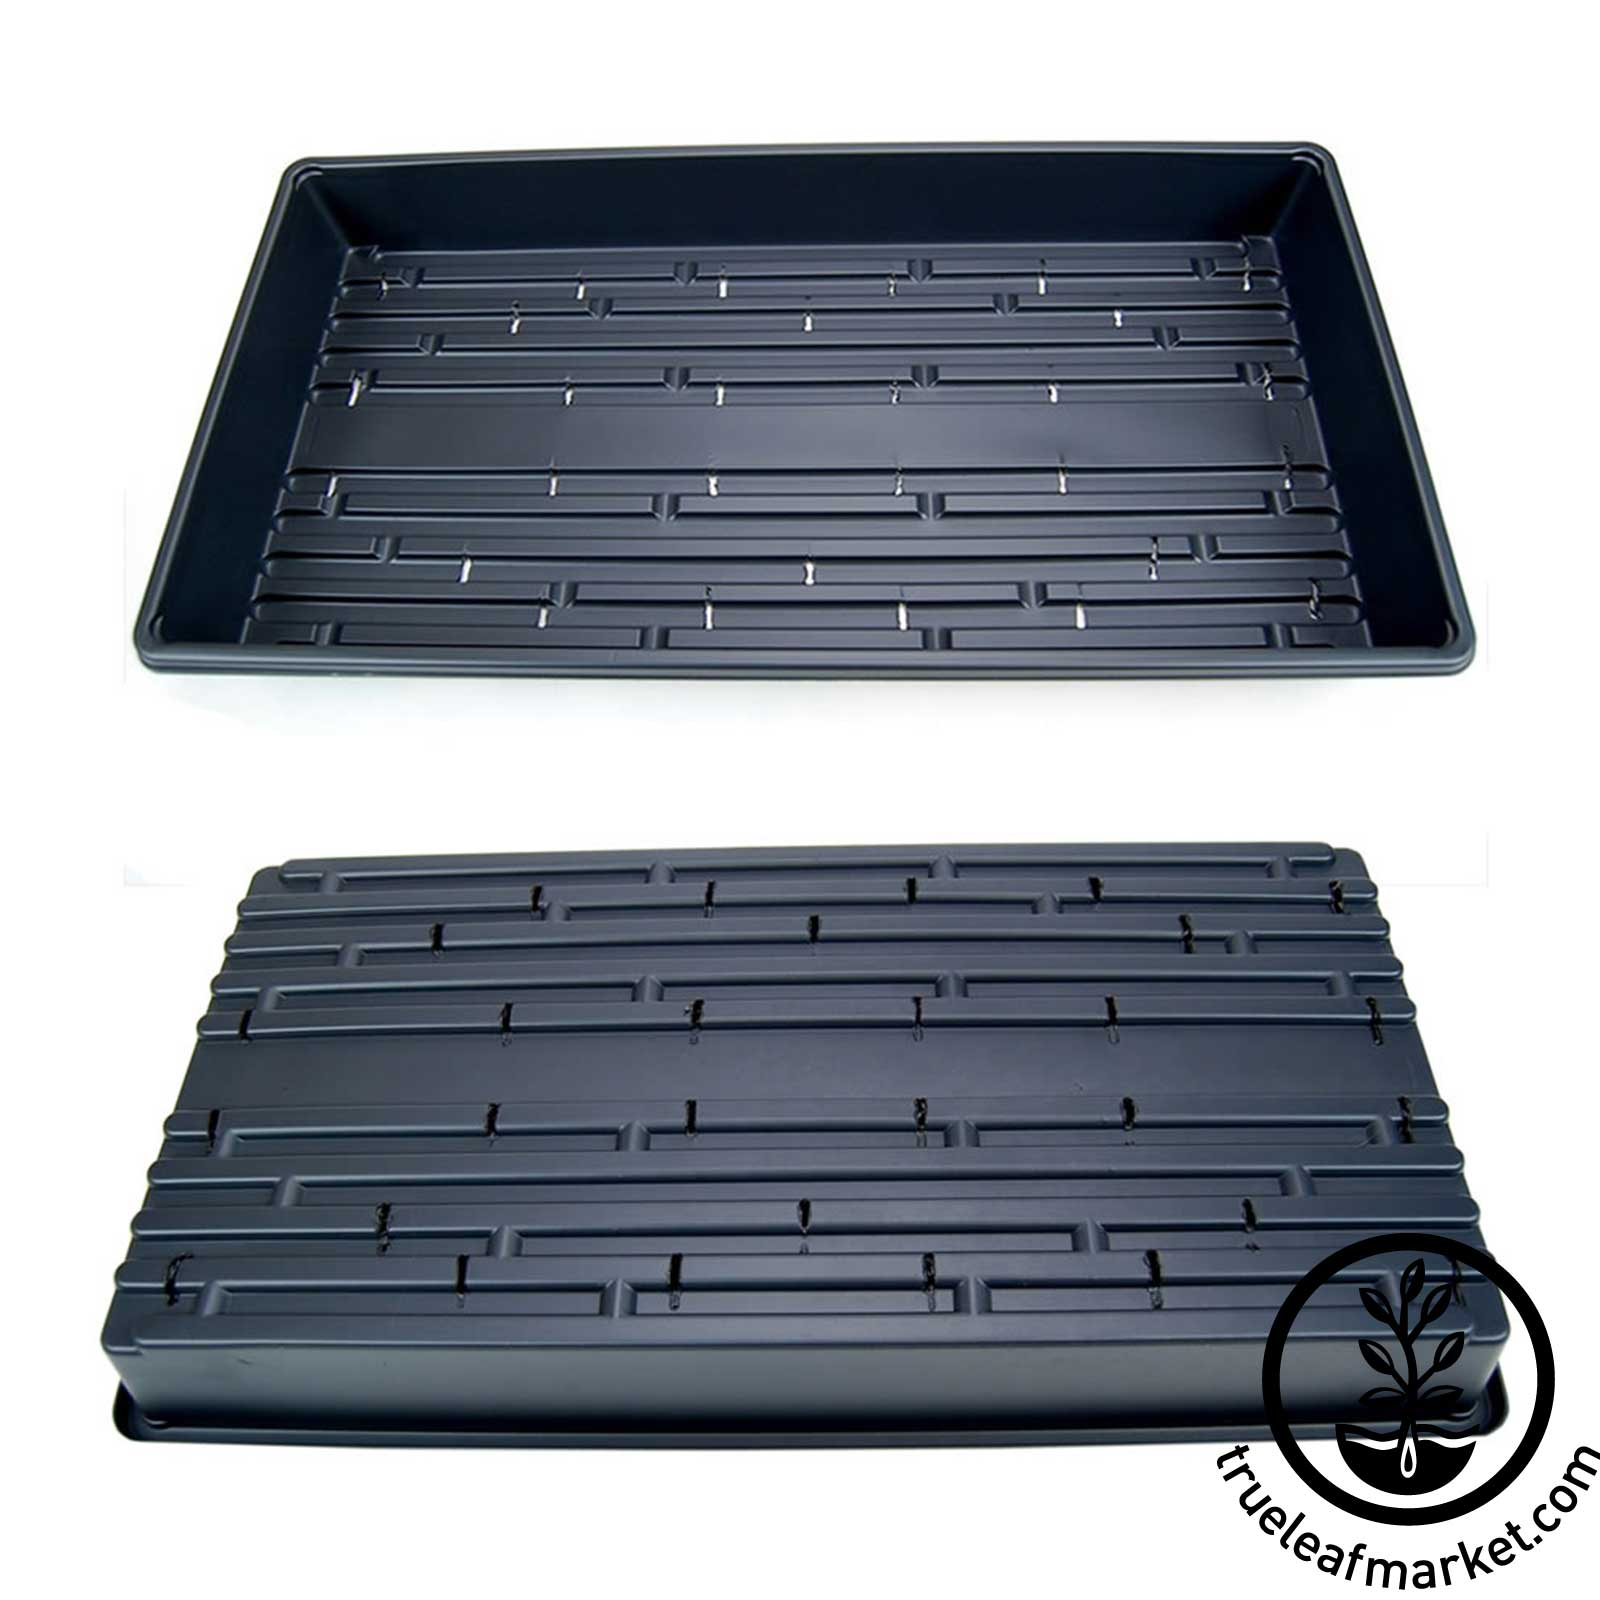 Plant Propagation Trays WITH Drain Slits - Top & Bottom View